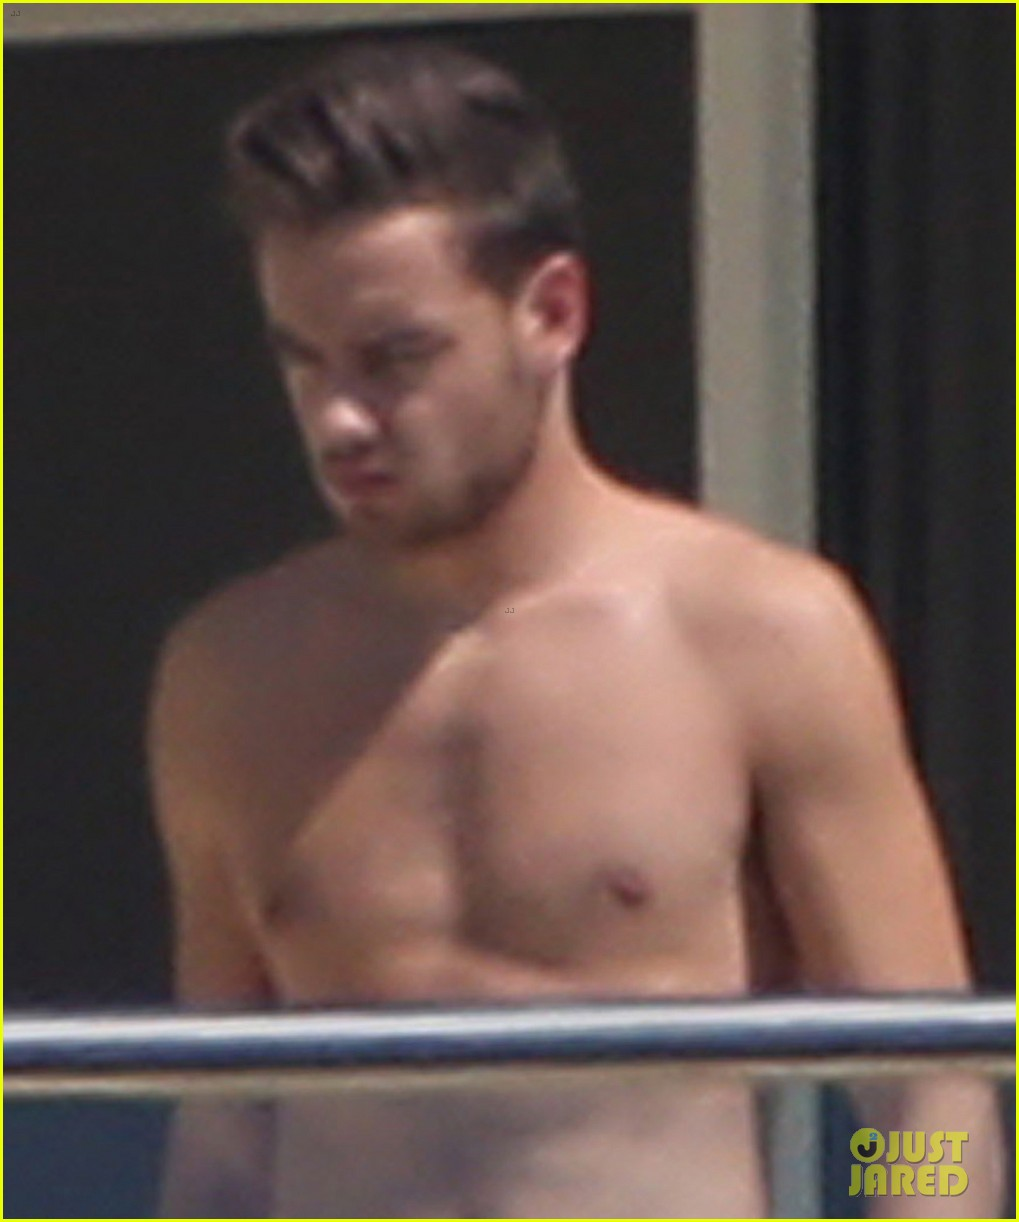 liam-payne-wears-underwear-super-low-on-hotel-balcony-02